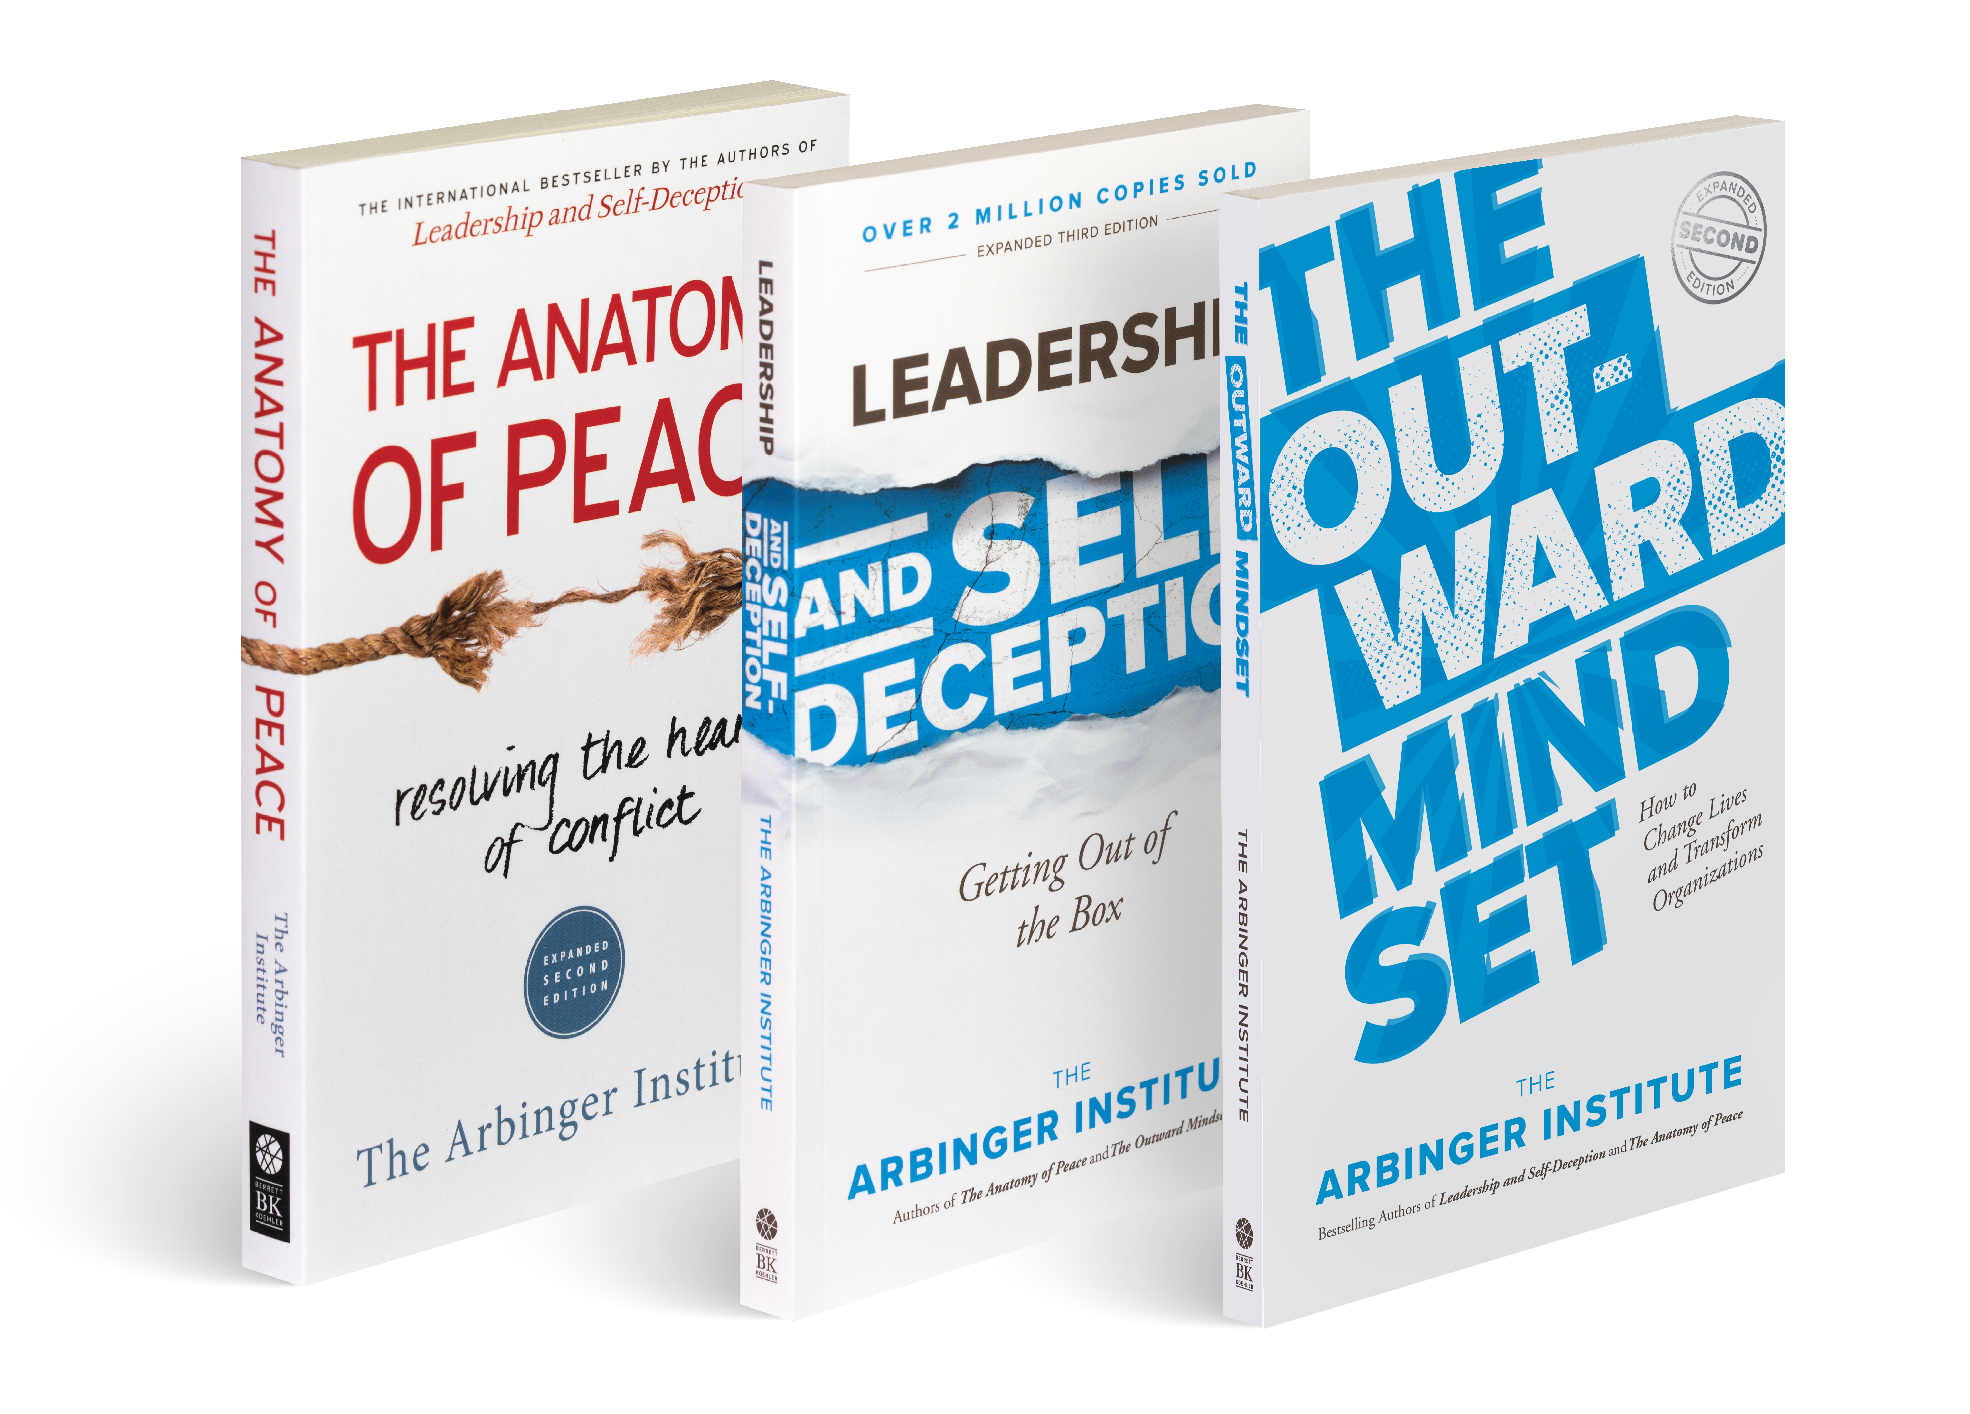 The Anatomy of Peace, Leadership and Self-Deception, and The Outward Mindset, Arbinger books